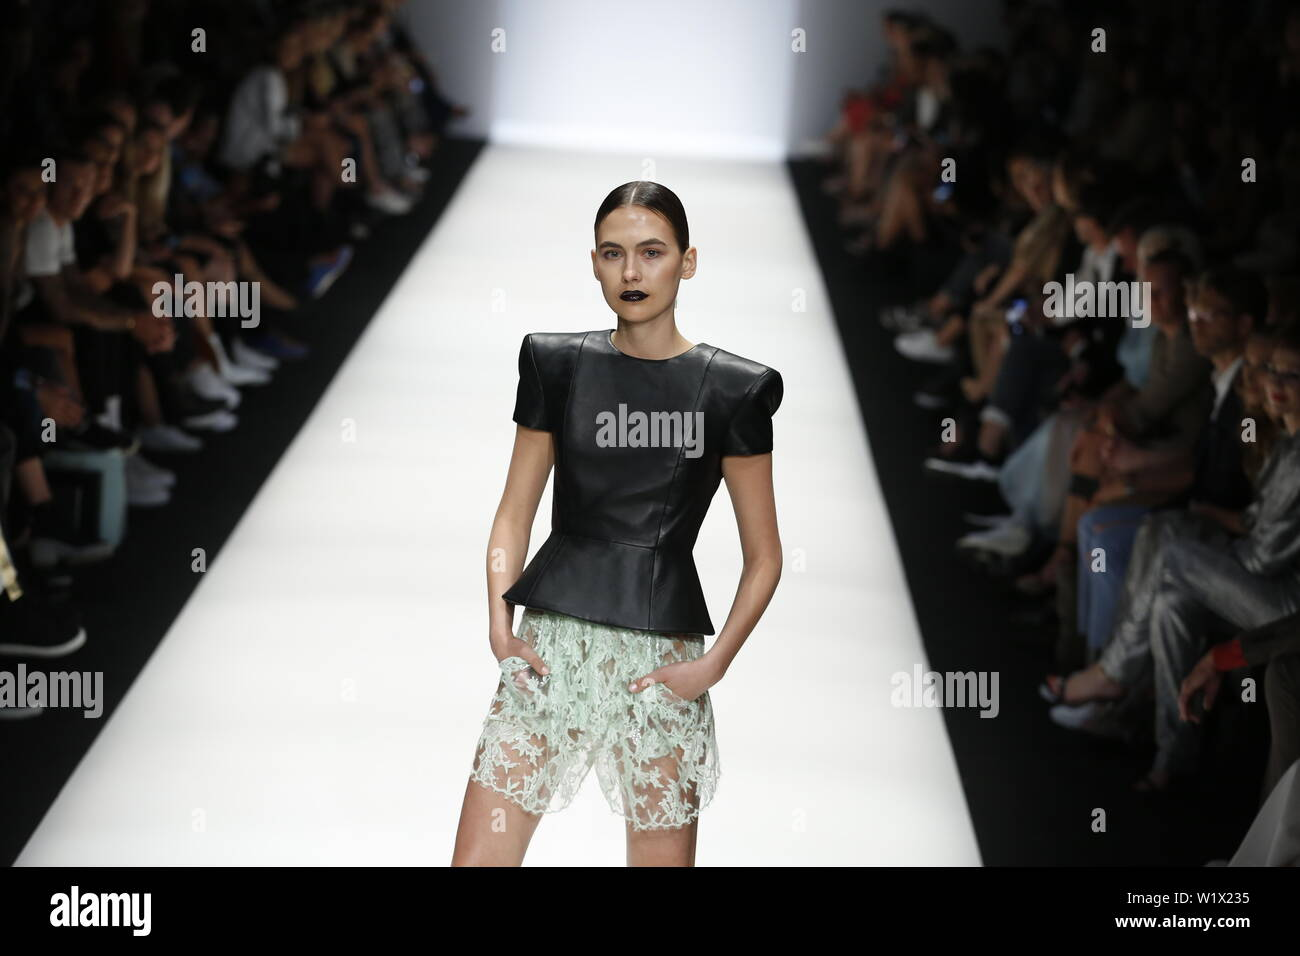 Berlin, Germany. 03rd July, 2019. The photo shows models on the catwalk with the collections spring/summer 2020 of the designer Atelier Michalsky at Mercedes-Benz Fashion Week. Credit: Simone Kuhlmey/Pacific Press/Alamy Live News Stock Photo